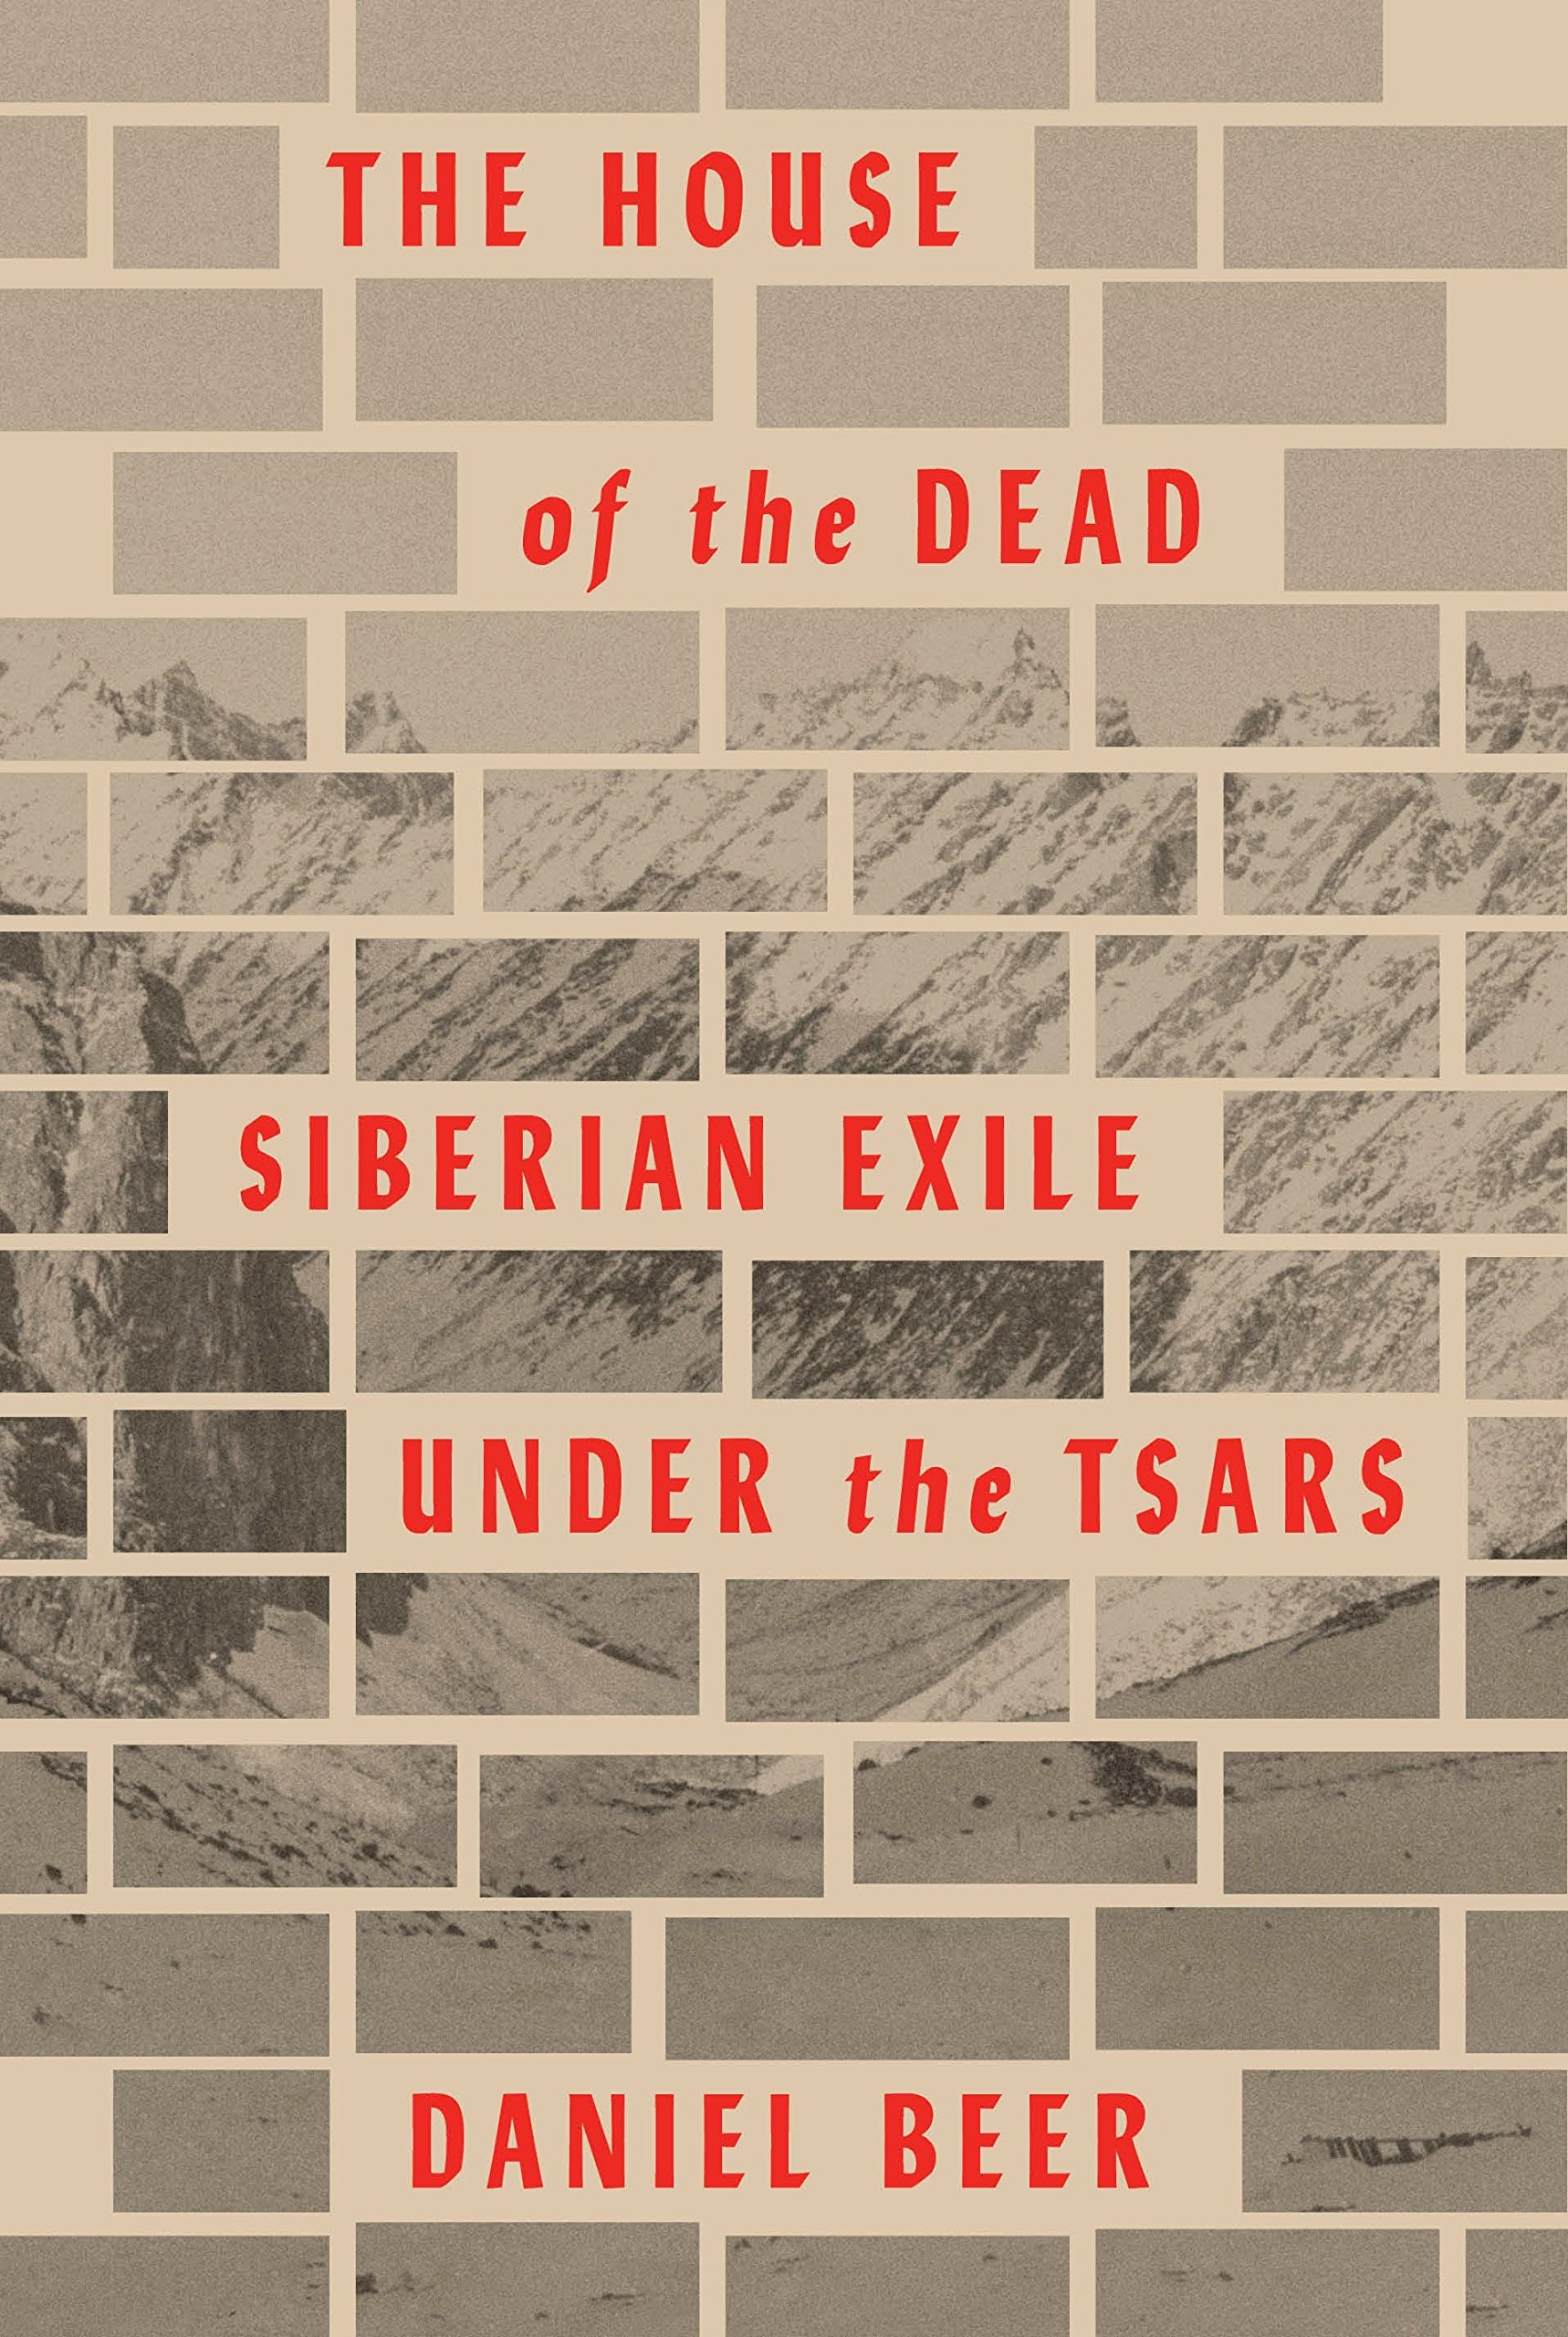 The House of the Dead: Siberian Exile Under the Tsars pdf